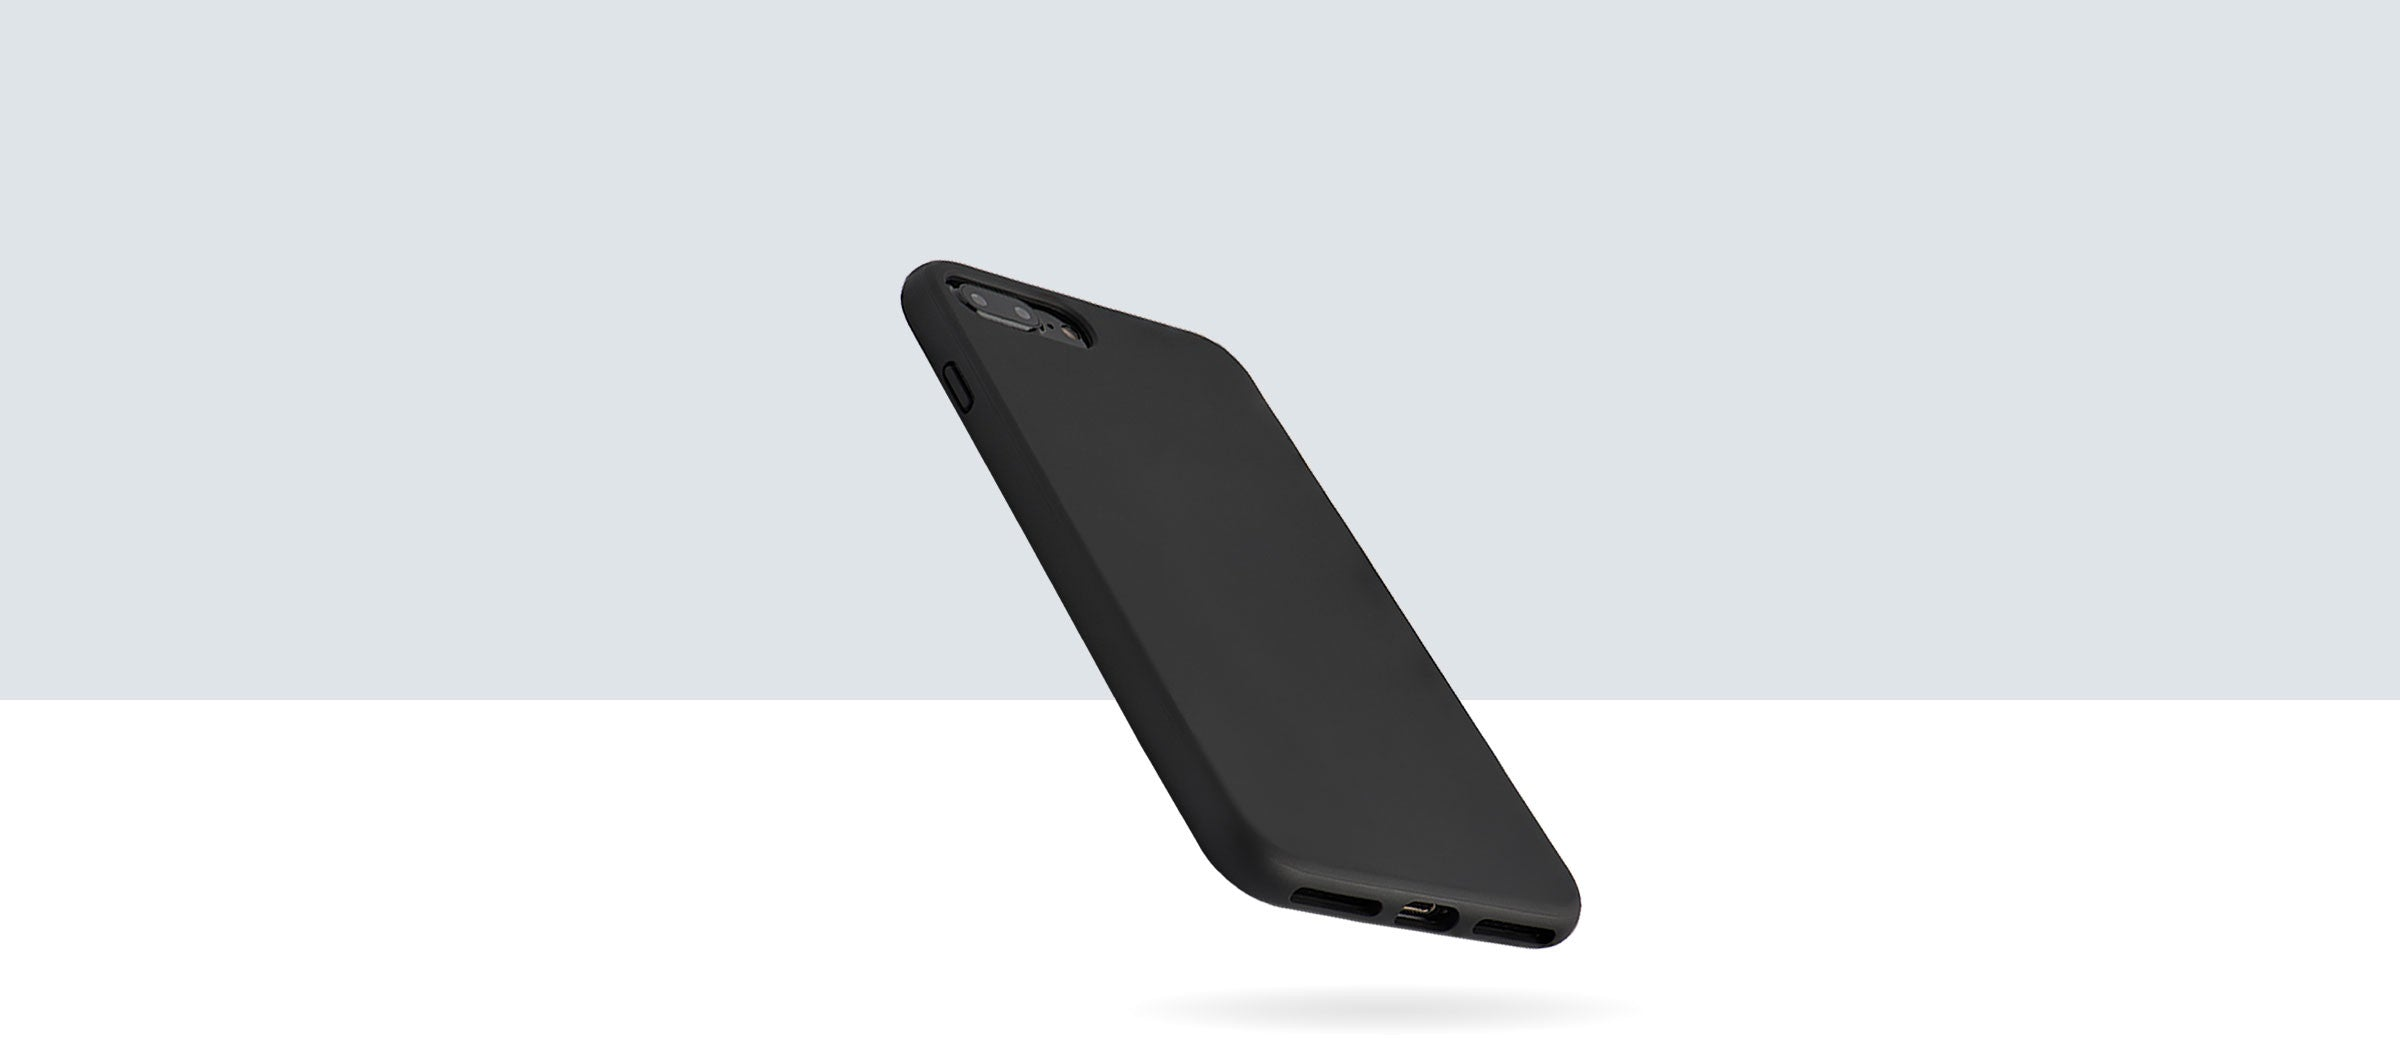 A black and protective iPhone case, made by totallee, protecting a falling iPhone